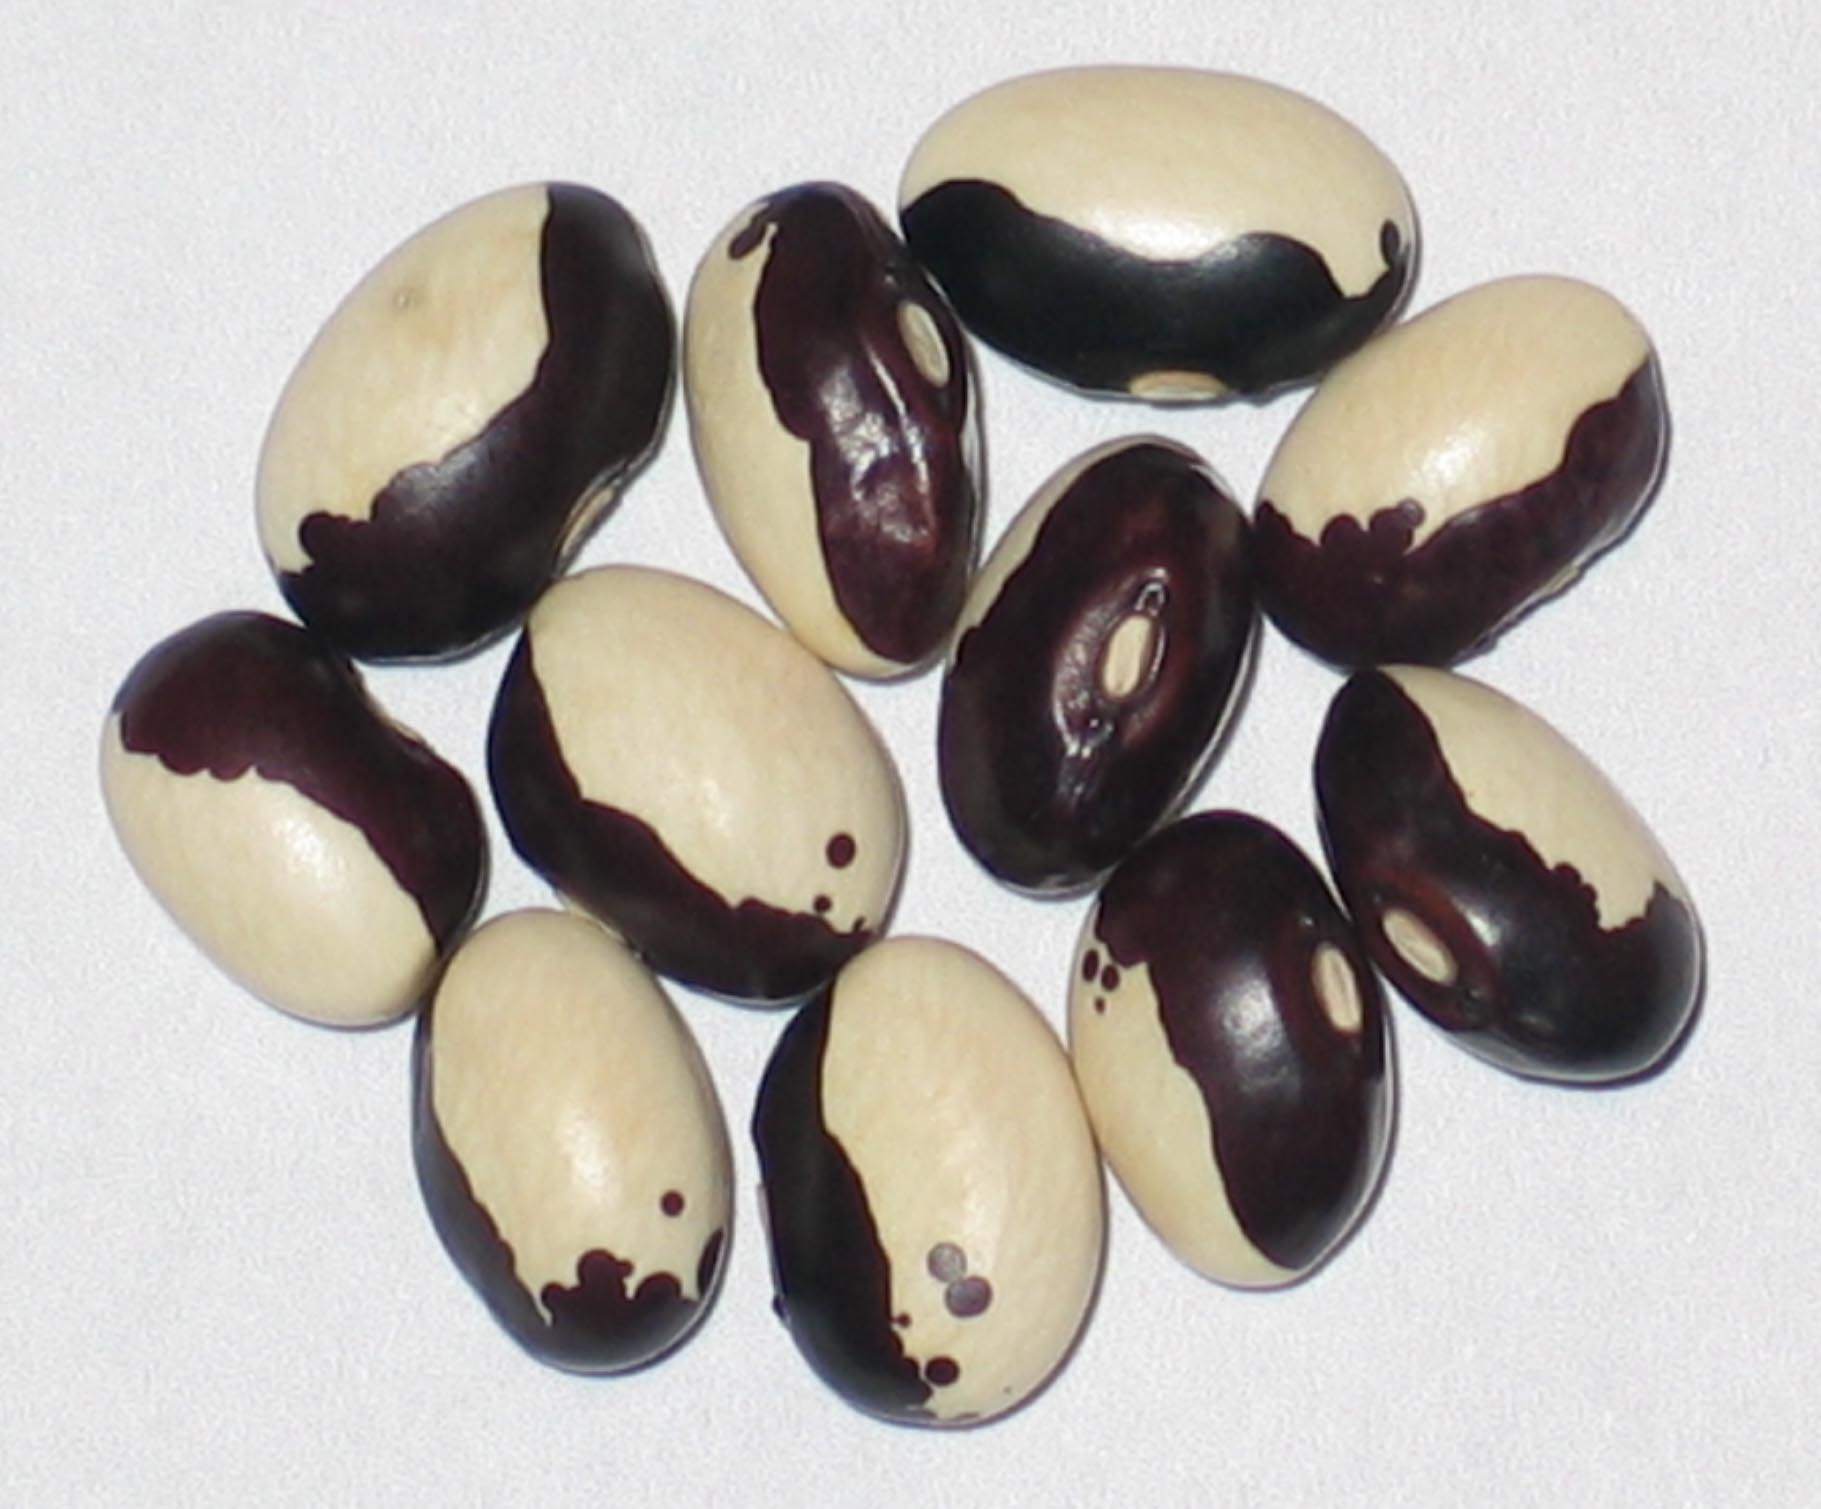 image of Orca beans